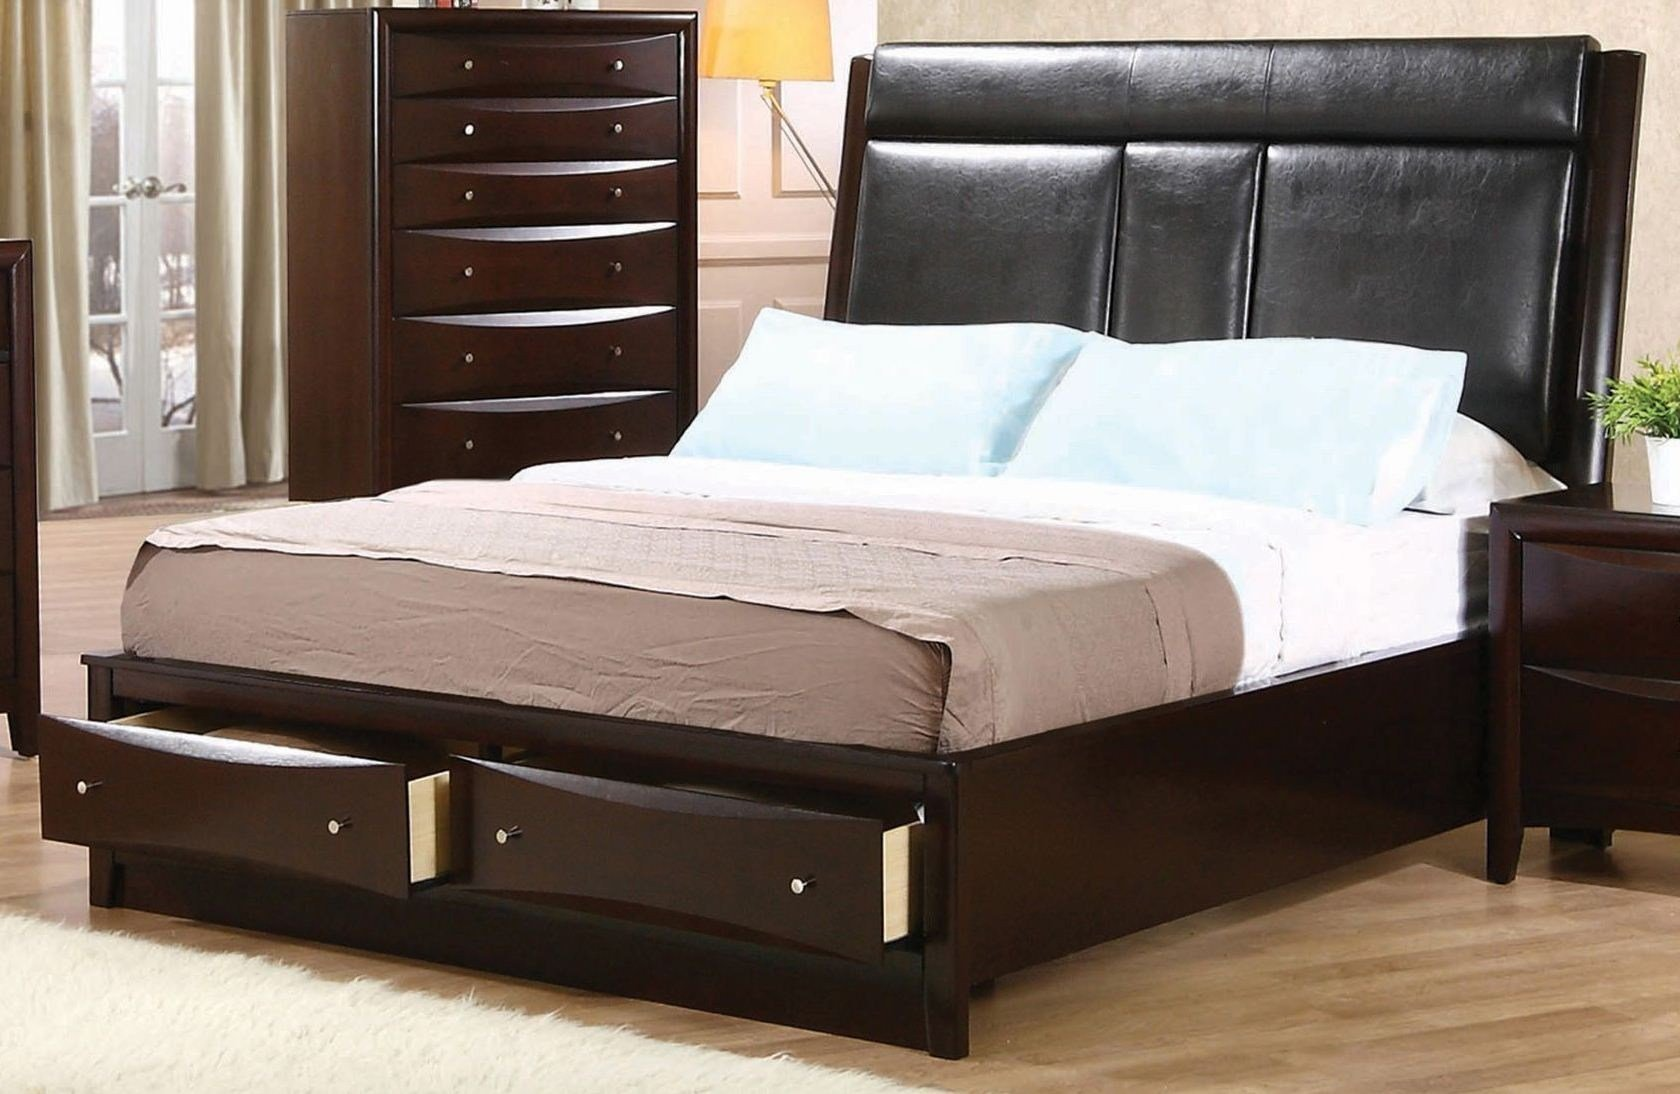 Best Phoenix Upholstered Storage Bedroom Set From Coaster With Pictures